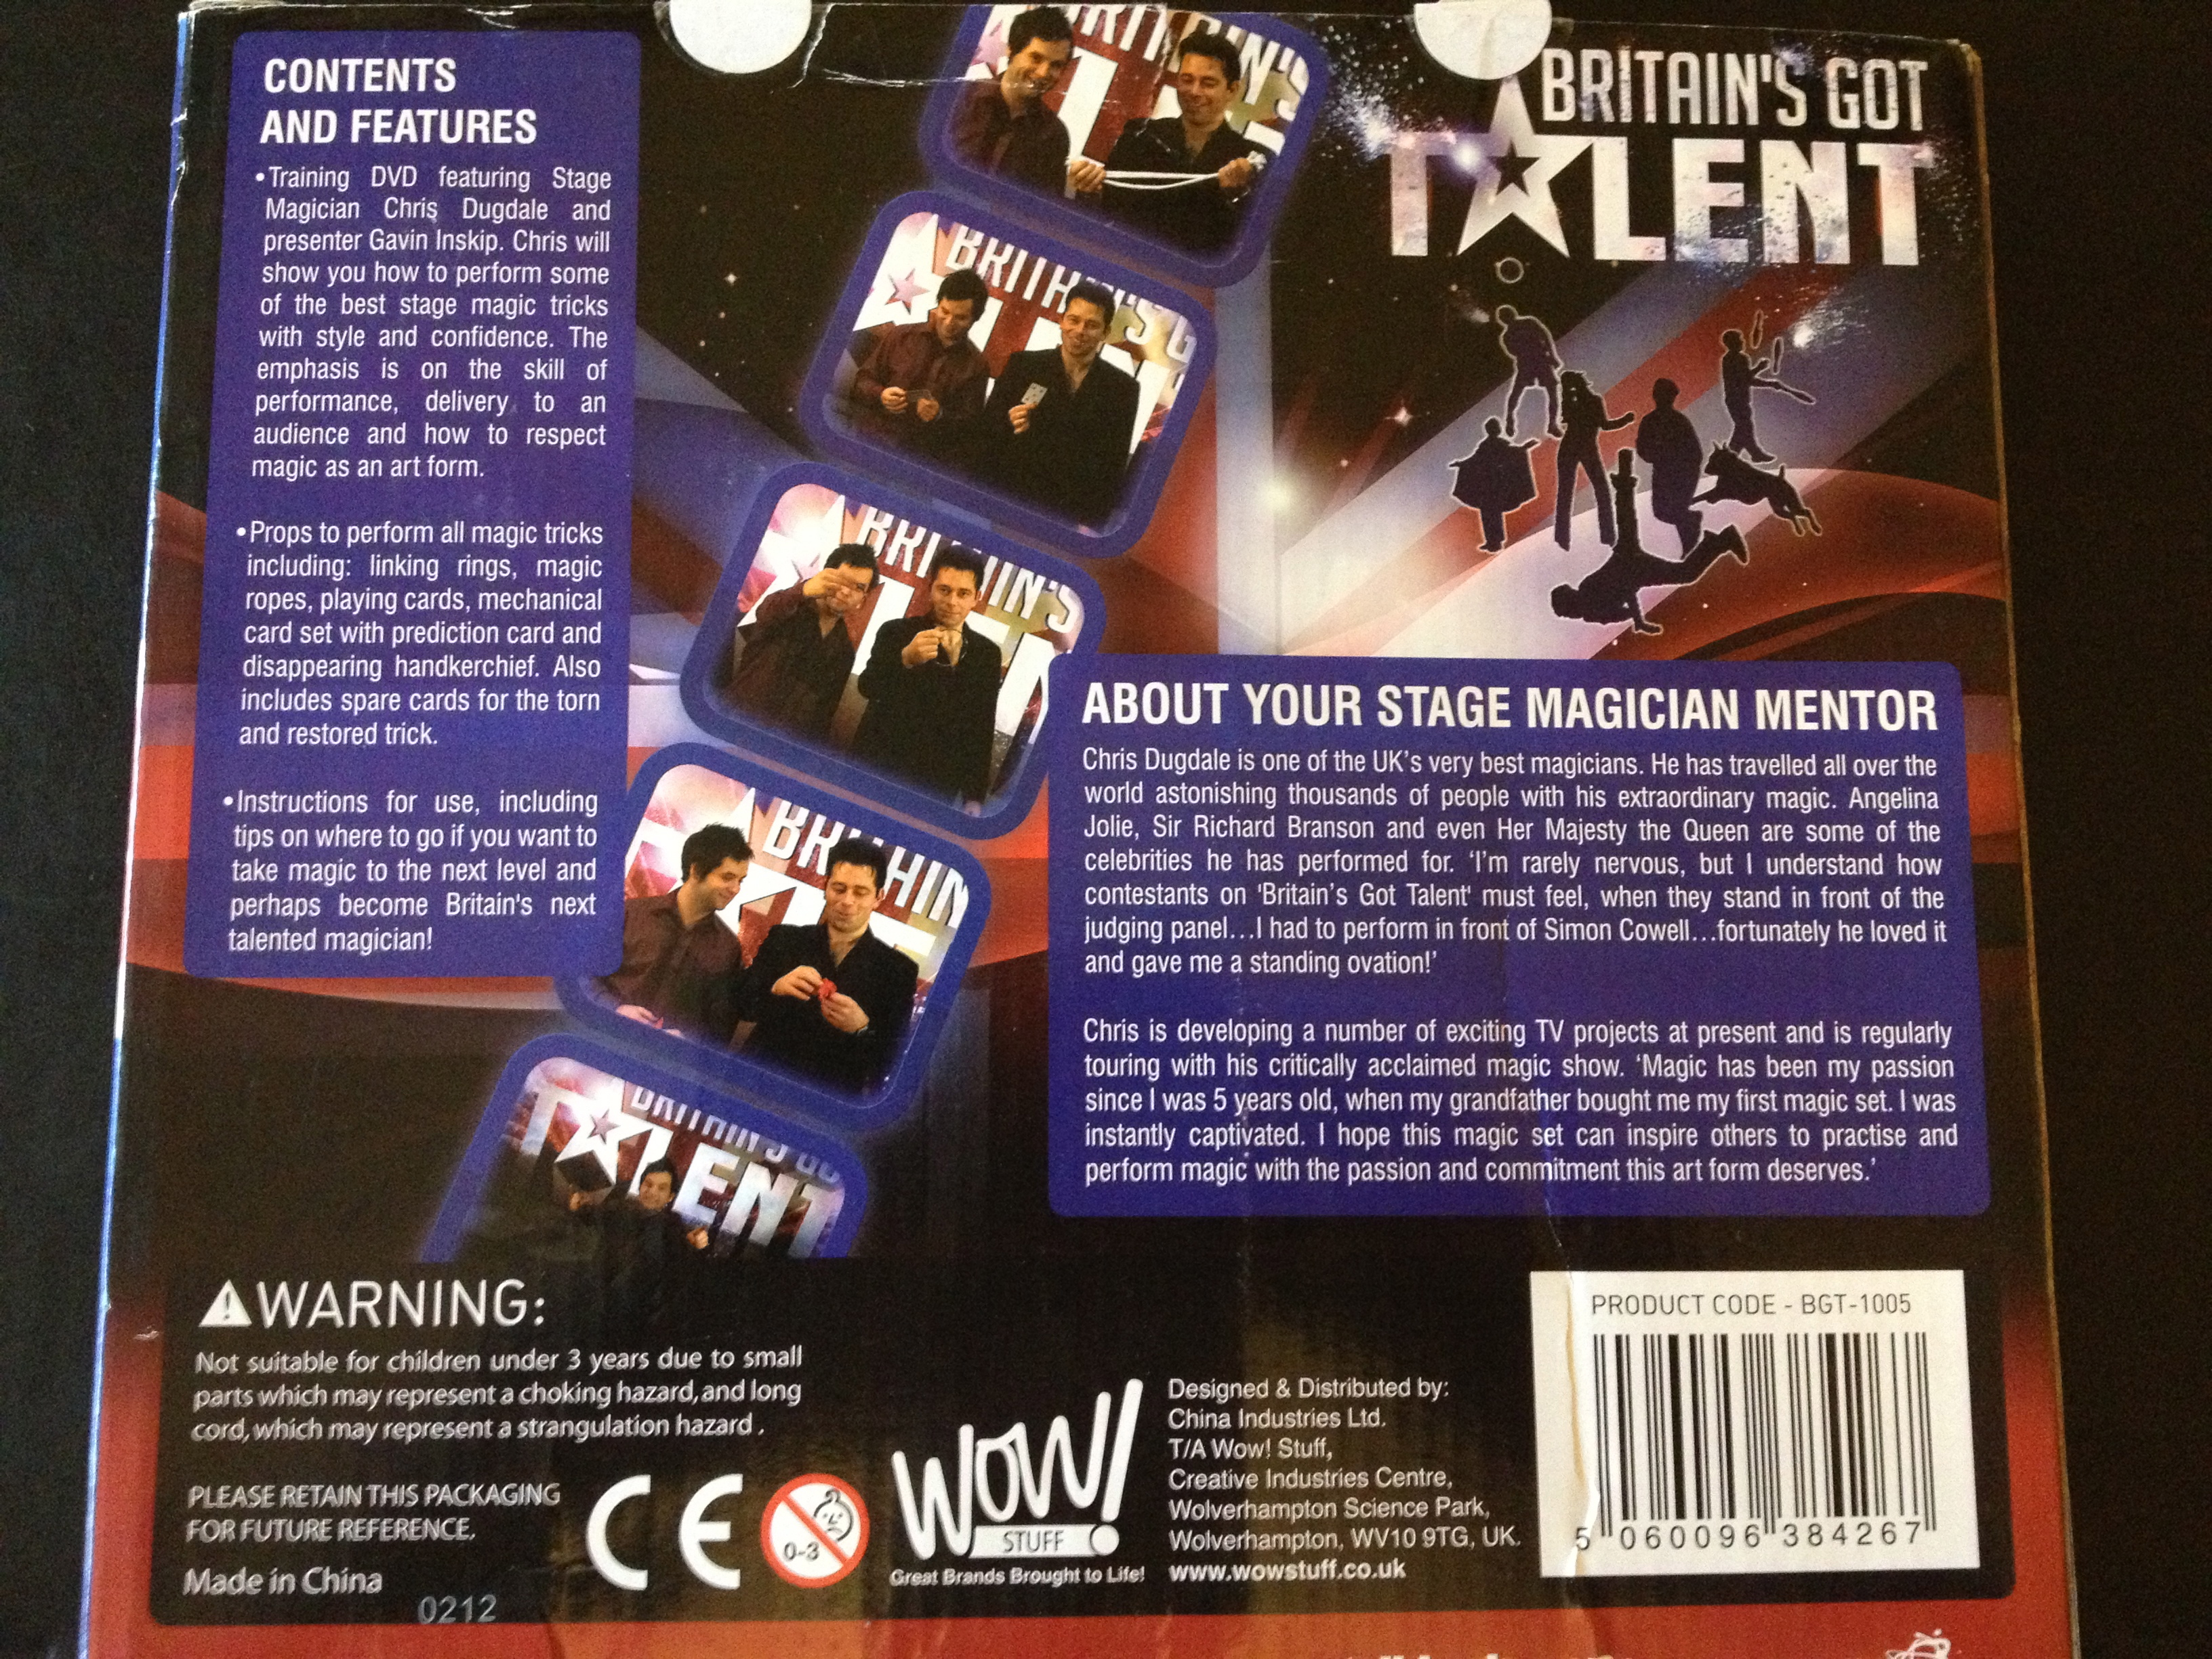 Britain's Got Talent Box Set